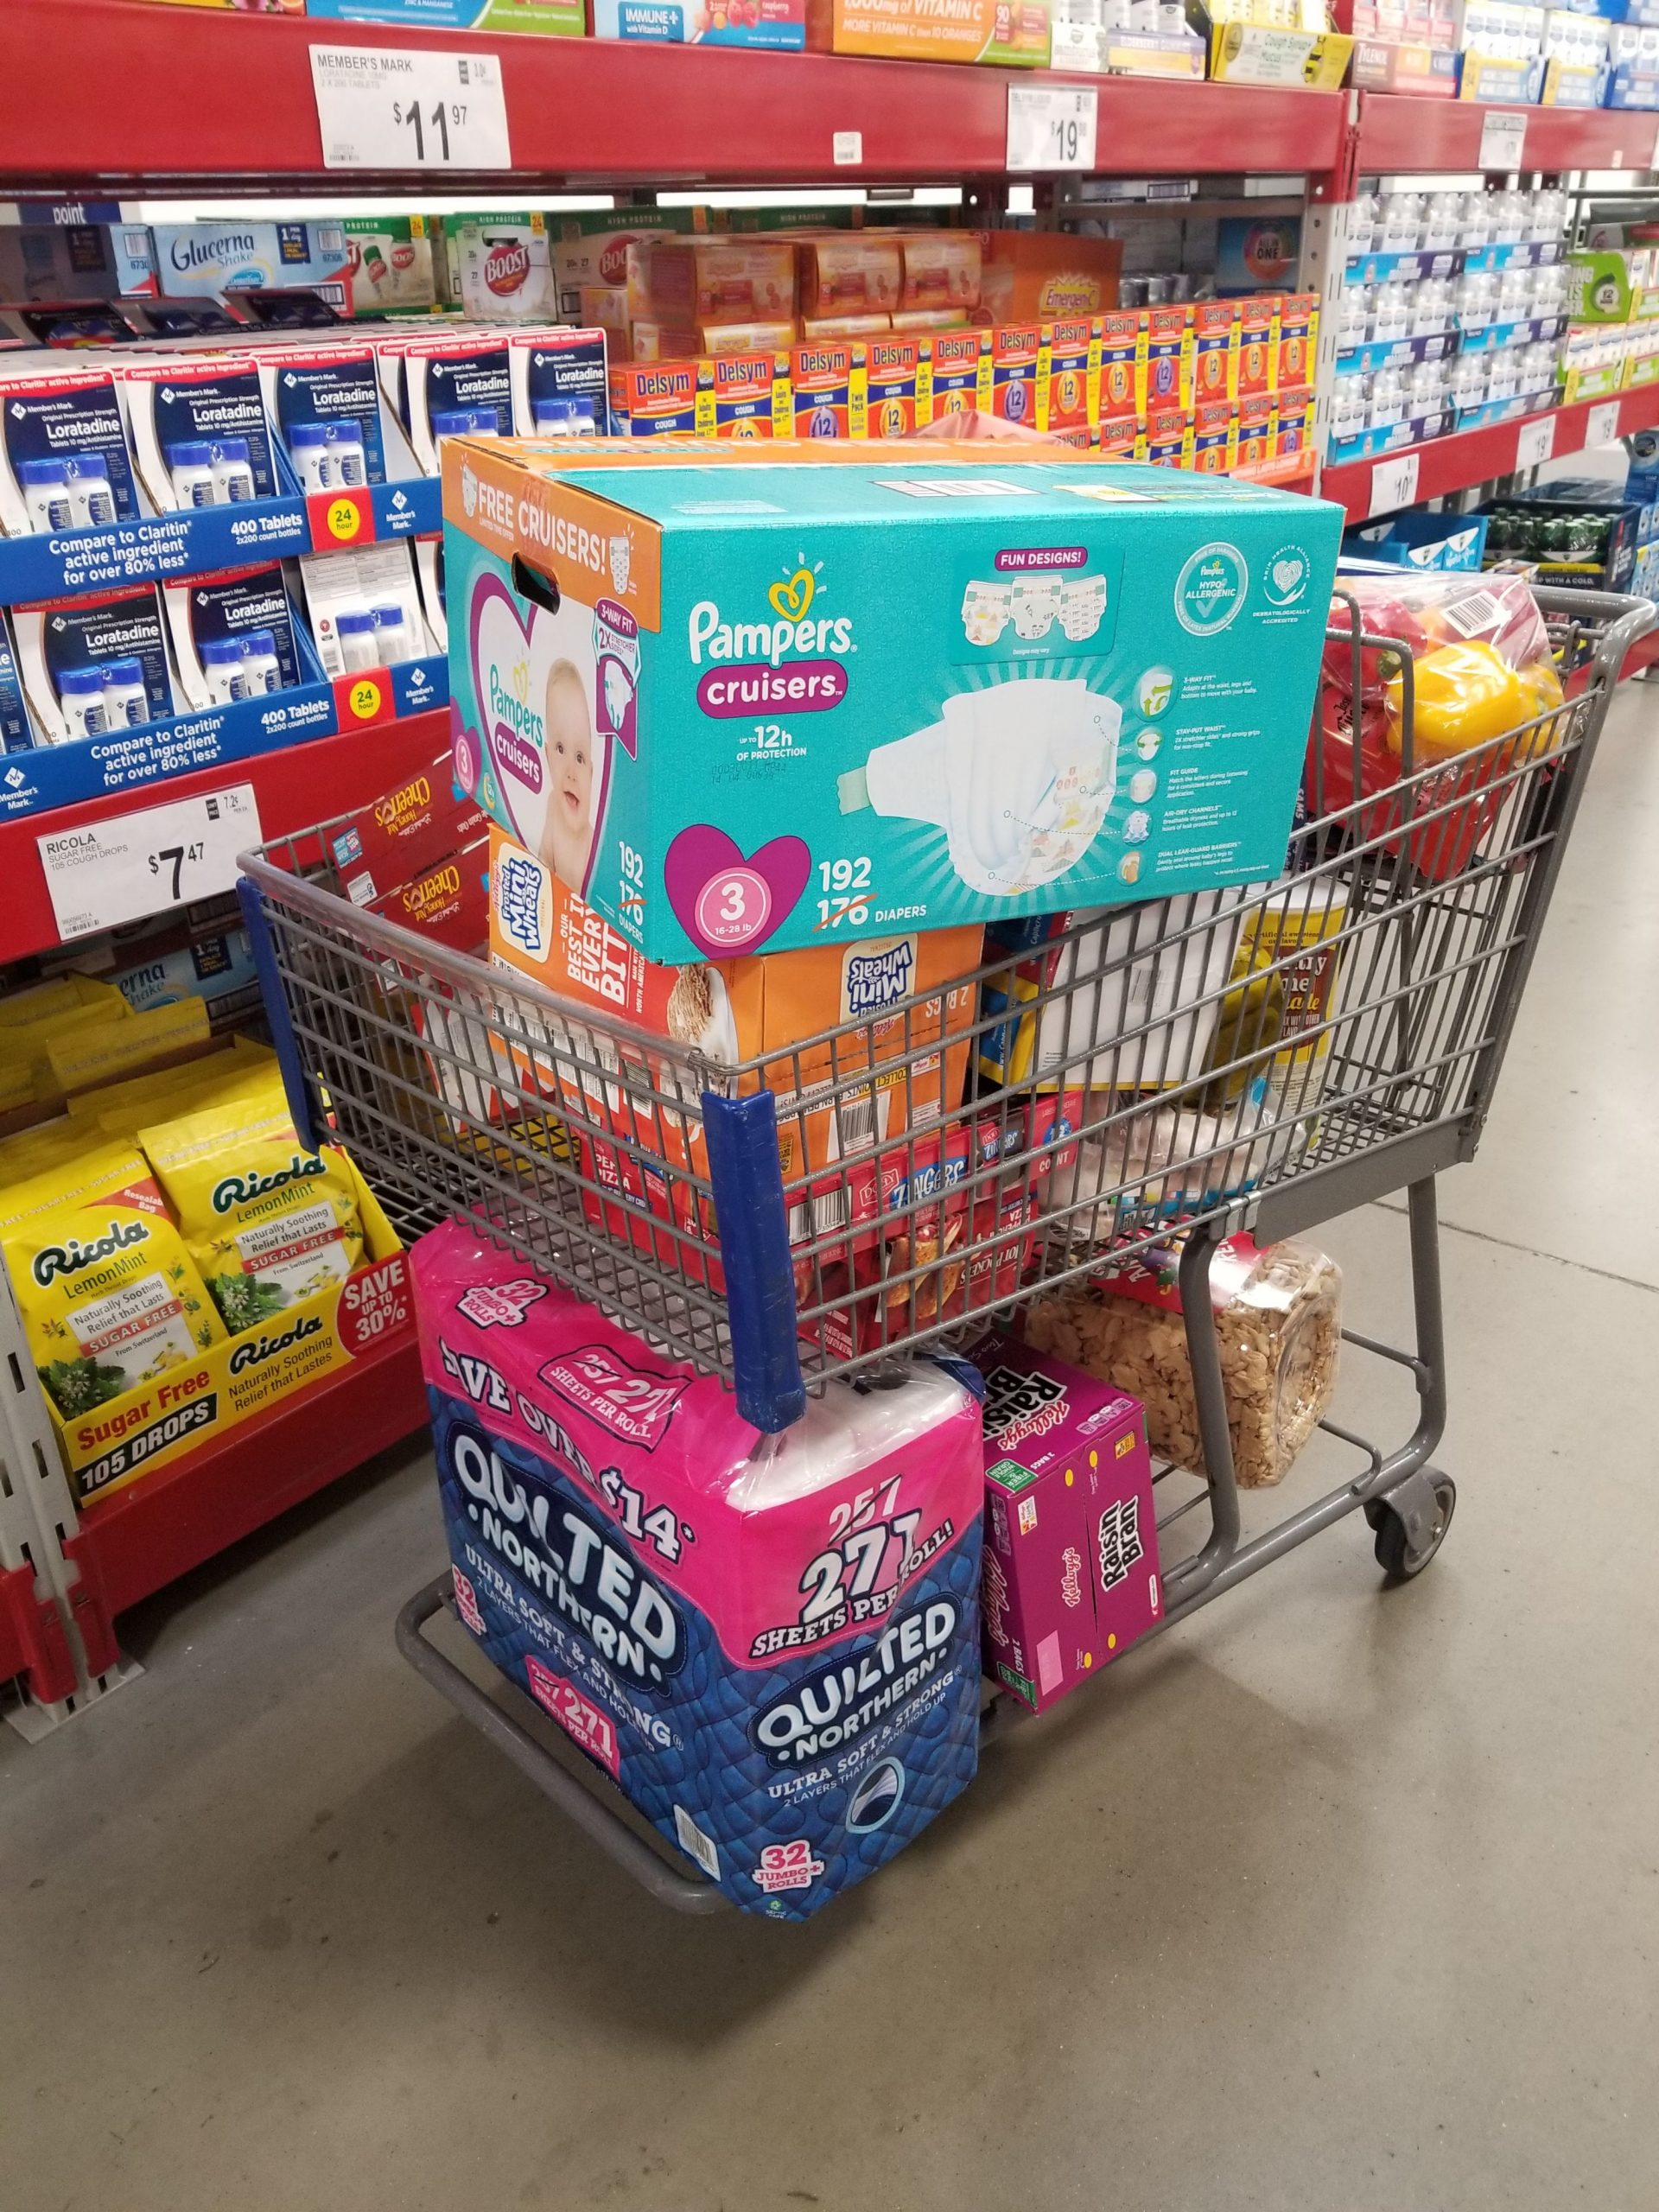 Shopping At Sam's Club - How To Find the Deals